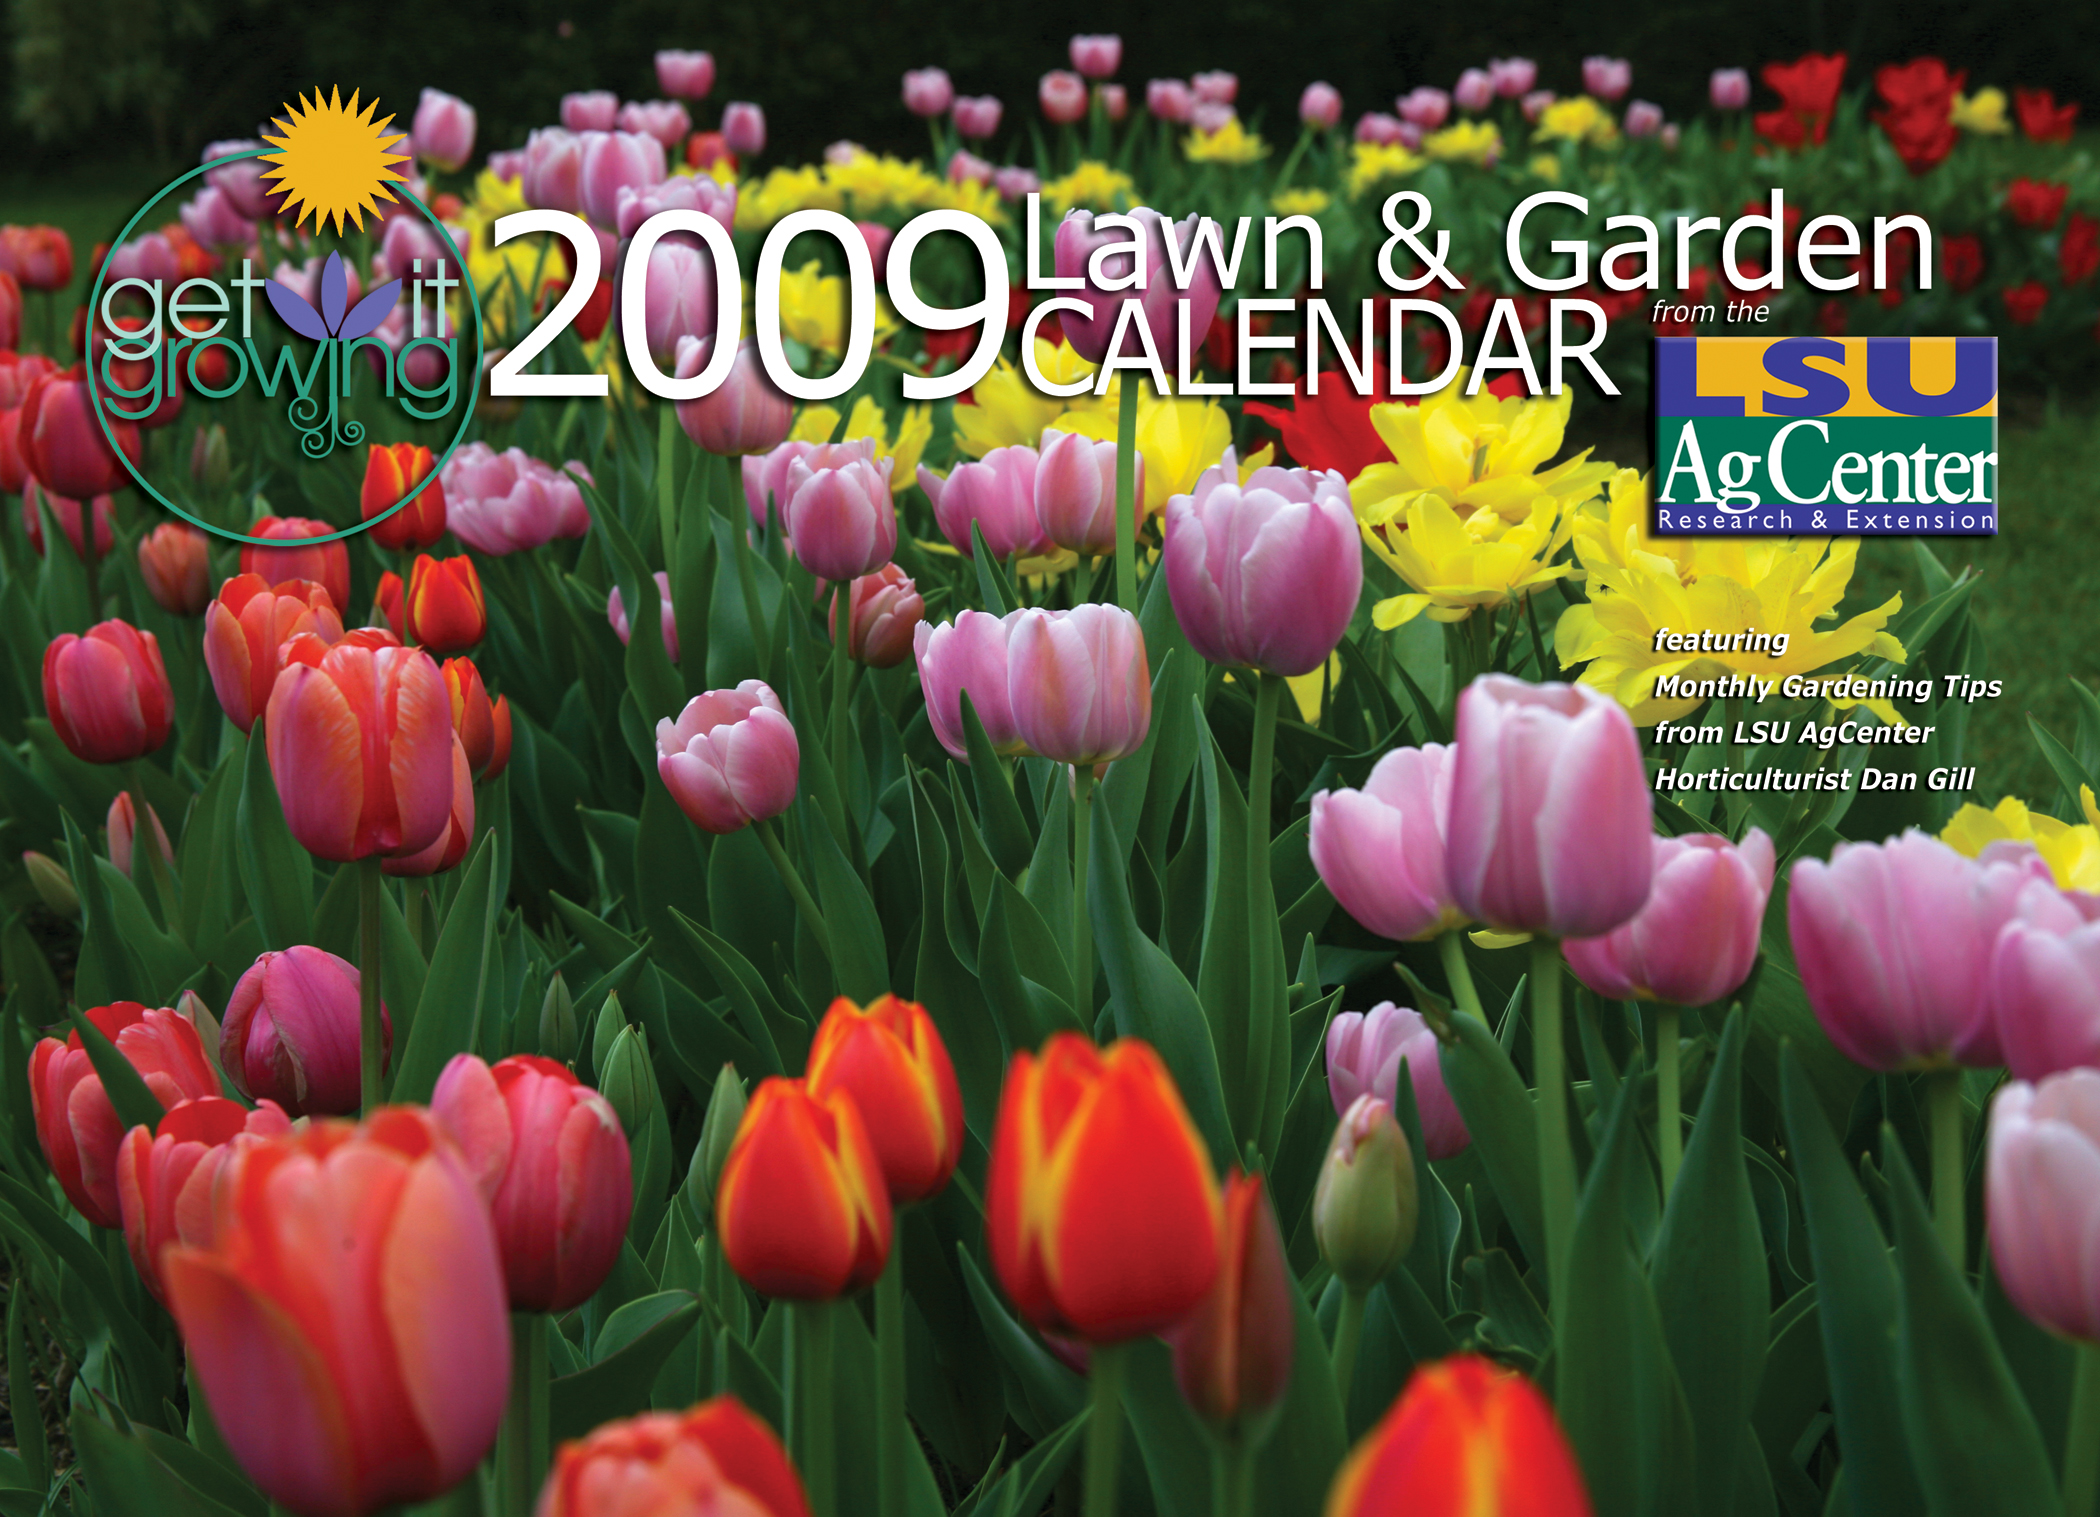 LSU AgCenter's Get It Growing Calendar makes great holiday gift